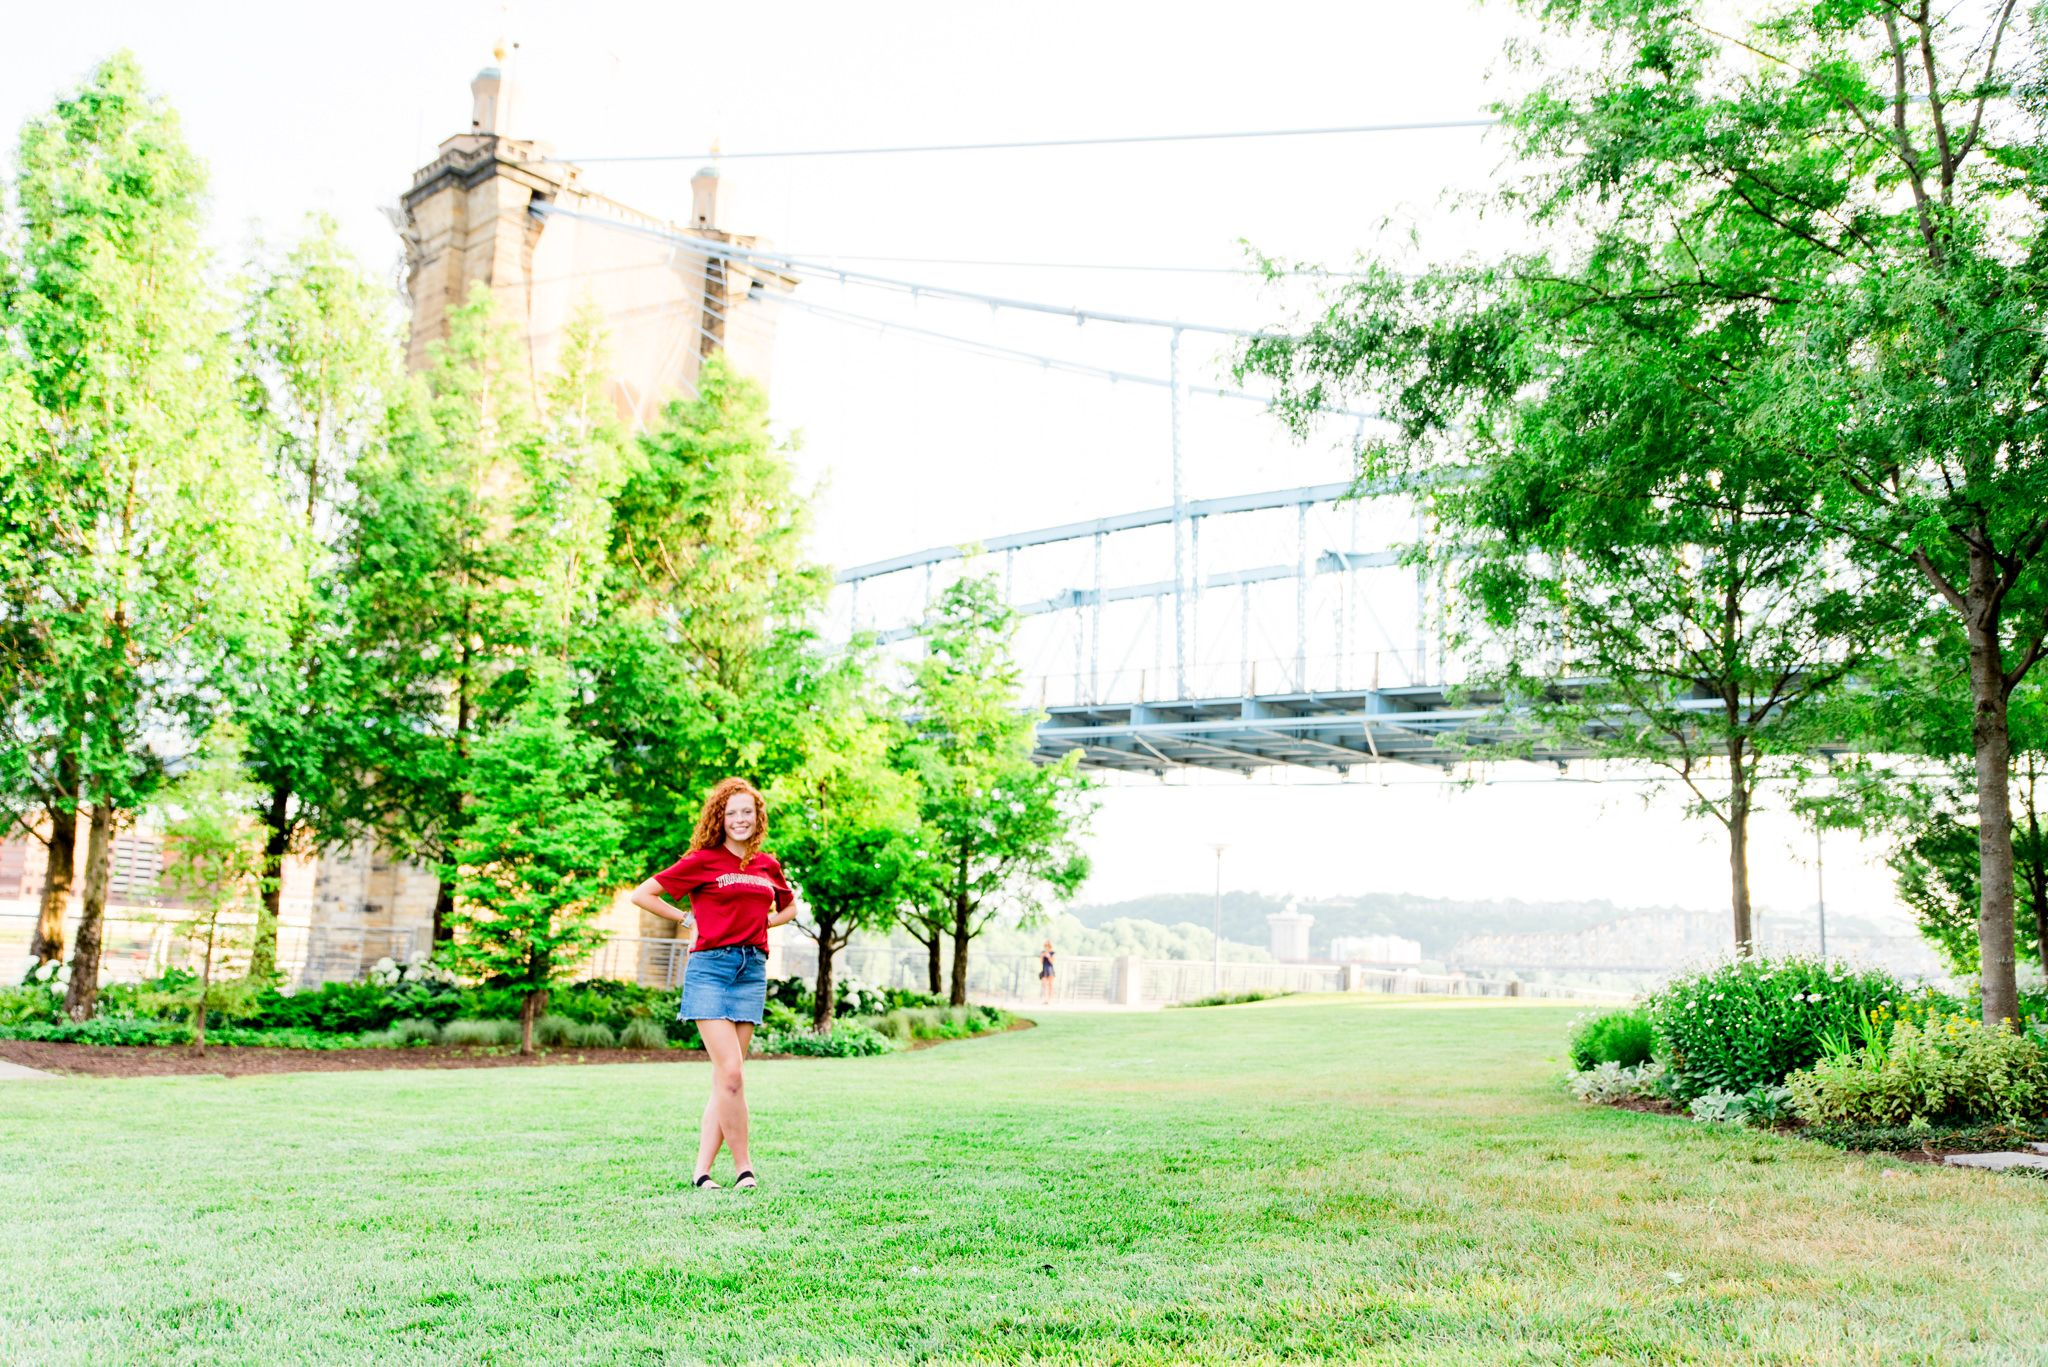 young woman in red Transylvania shirt standing in Smale Park in front of the Roebling Bridge